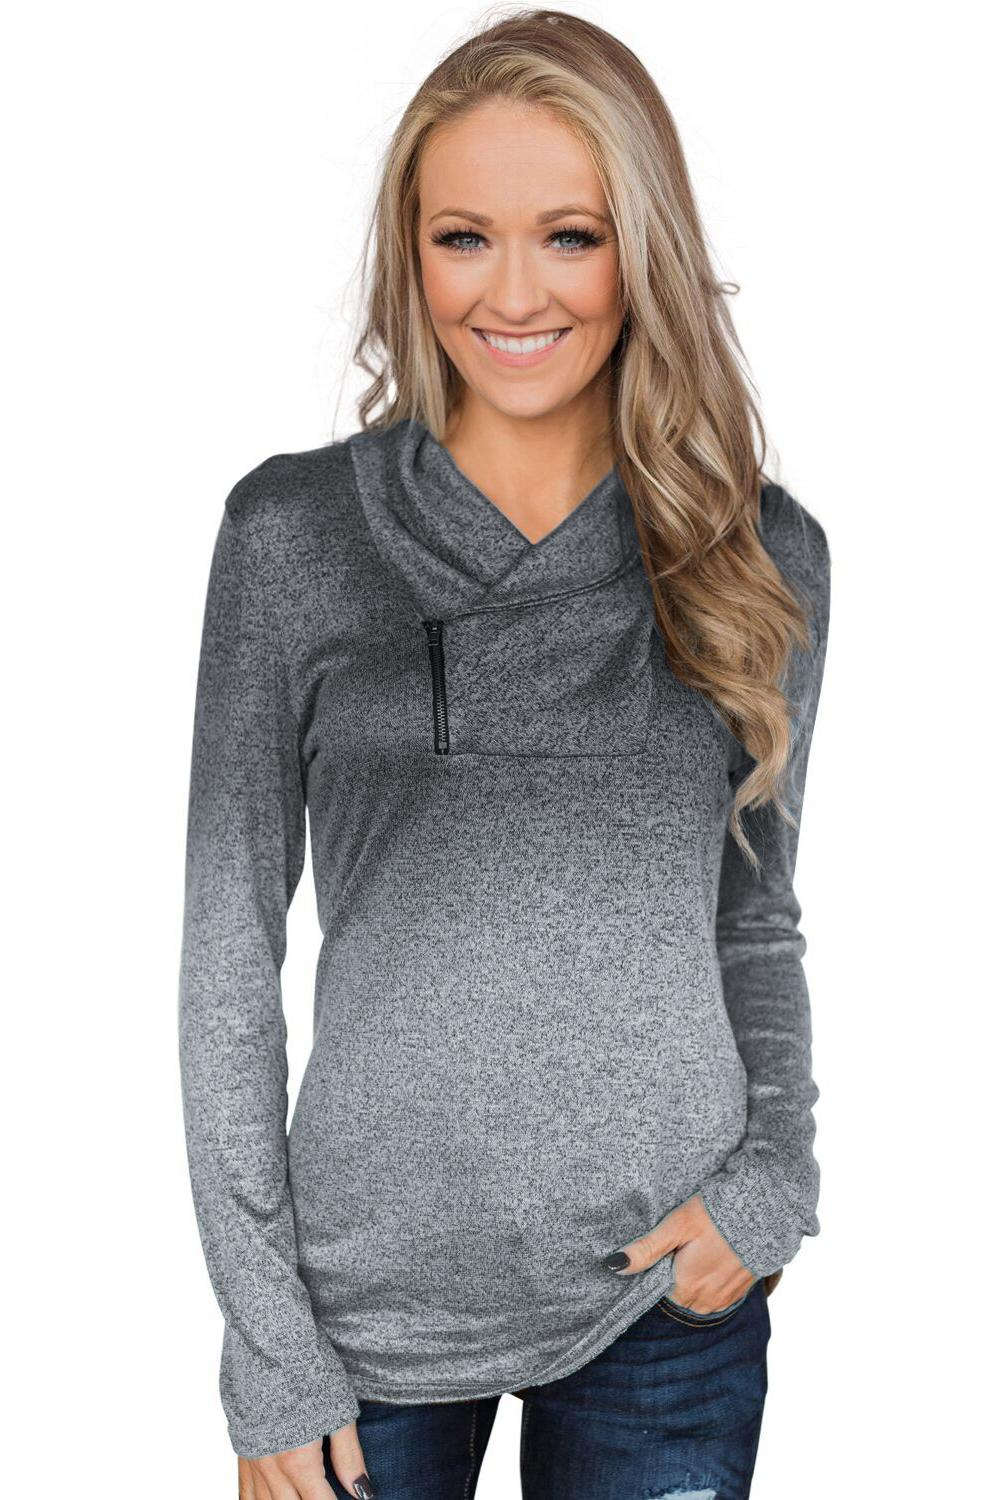 Ombre Long Sleeves Pullover Zipper Cowl Neck Sweatshirt